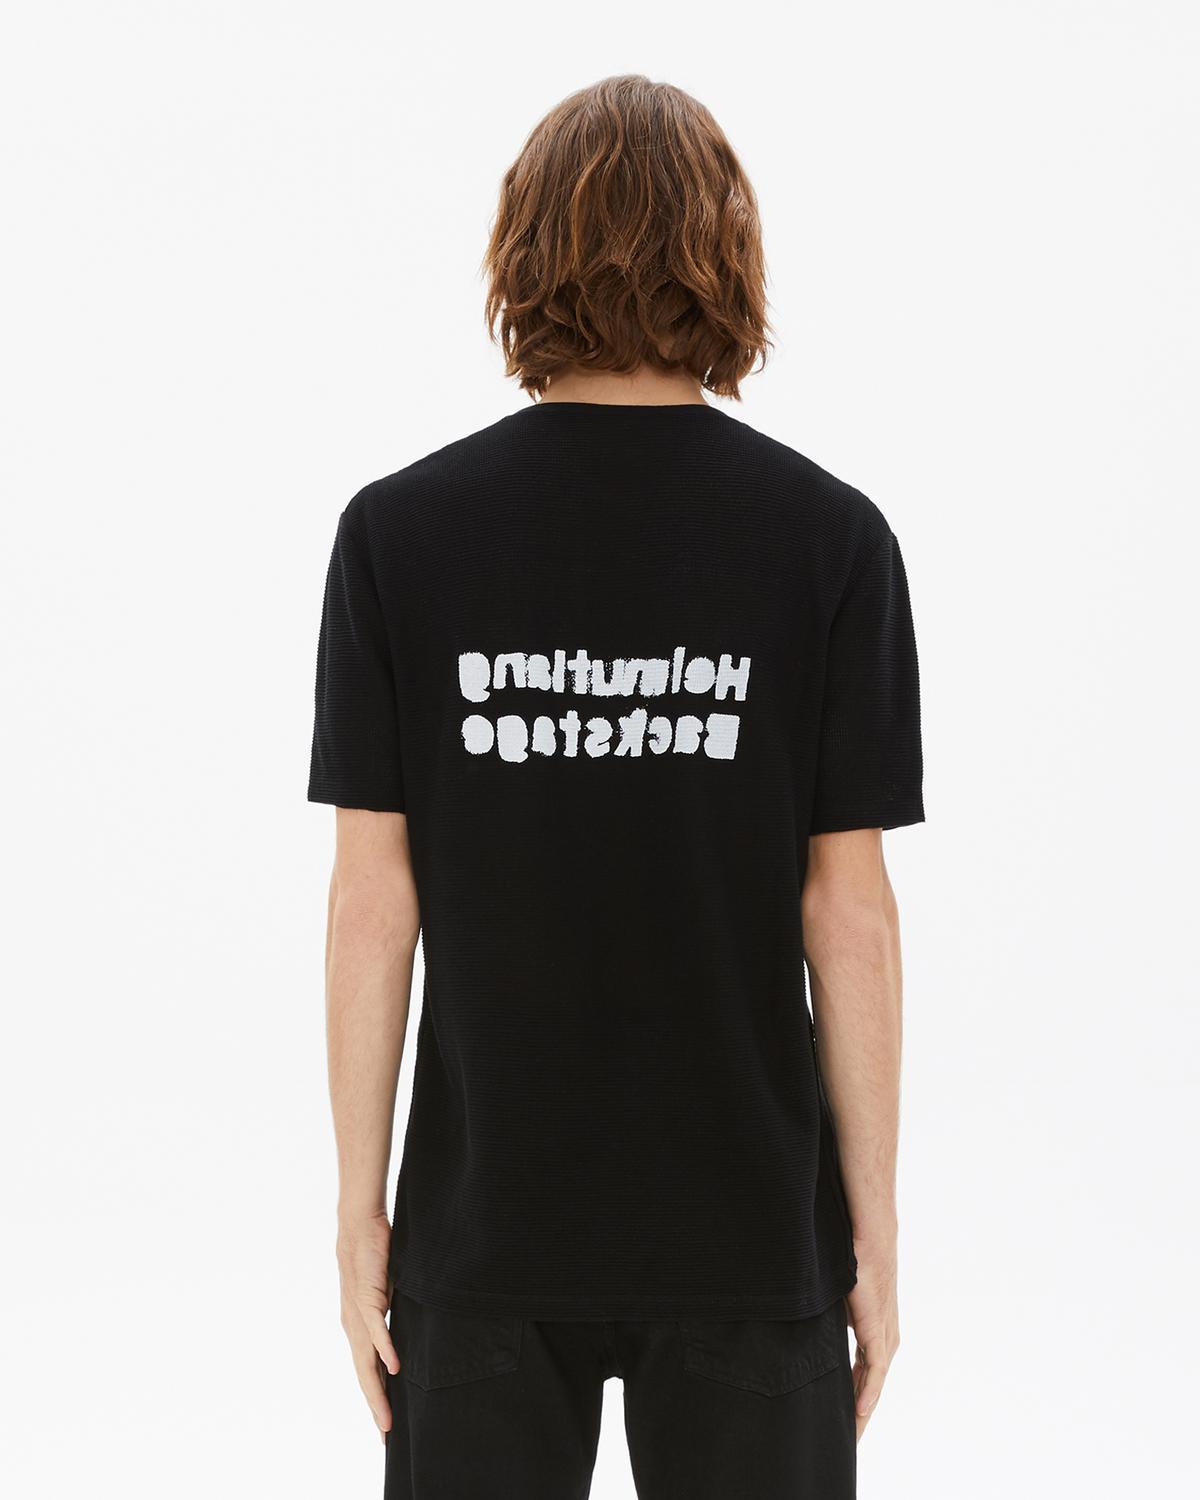 MEN'S BACKSTAGE PRINT T-SHIRT